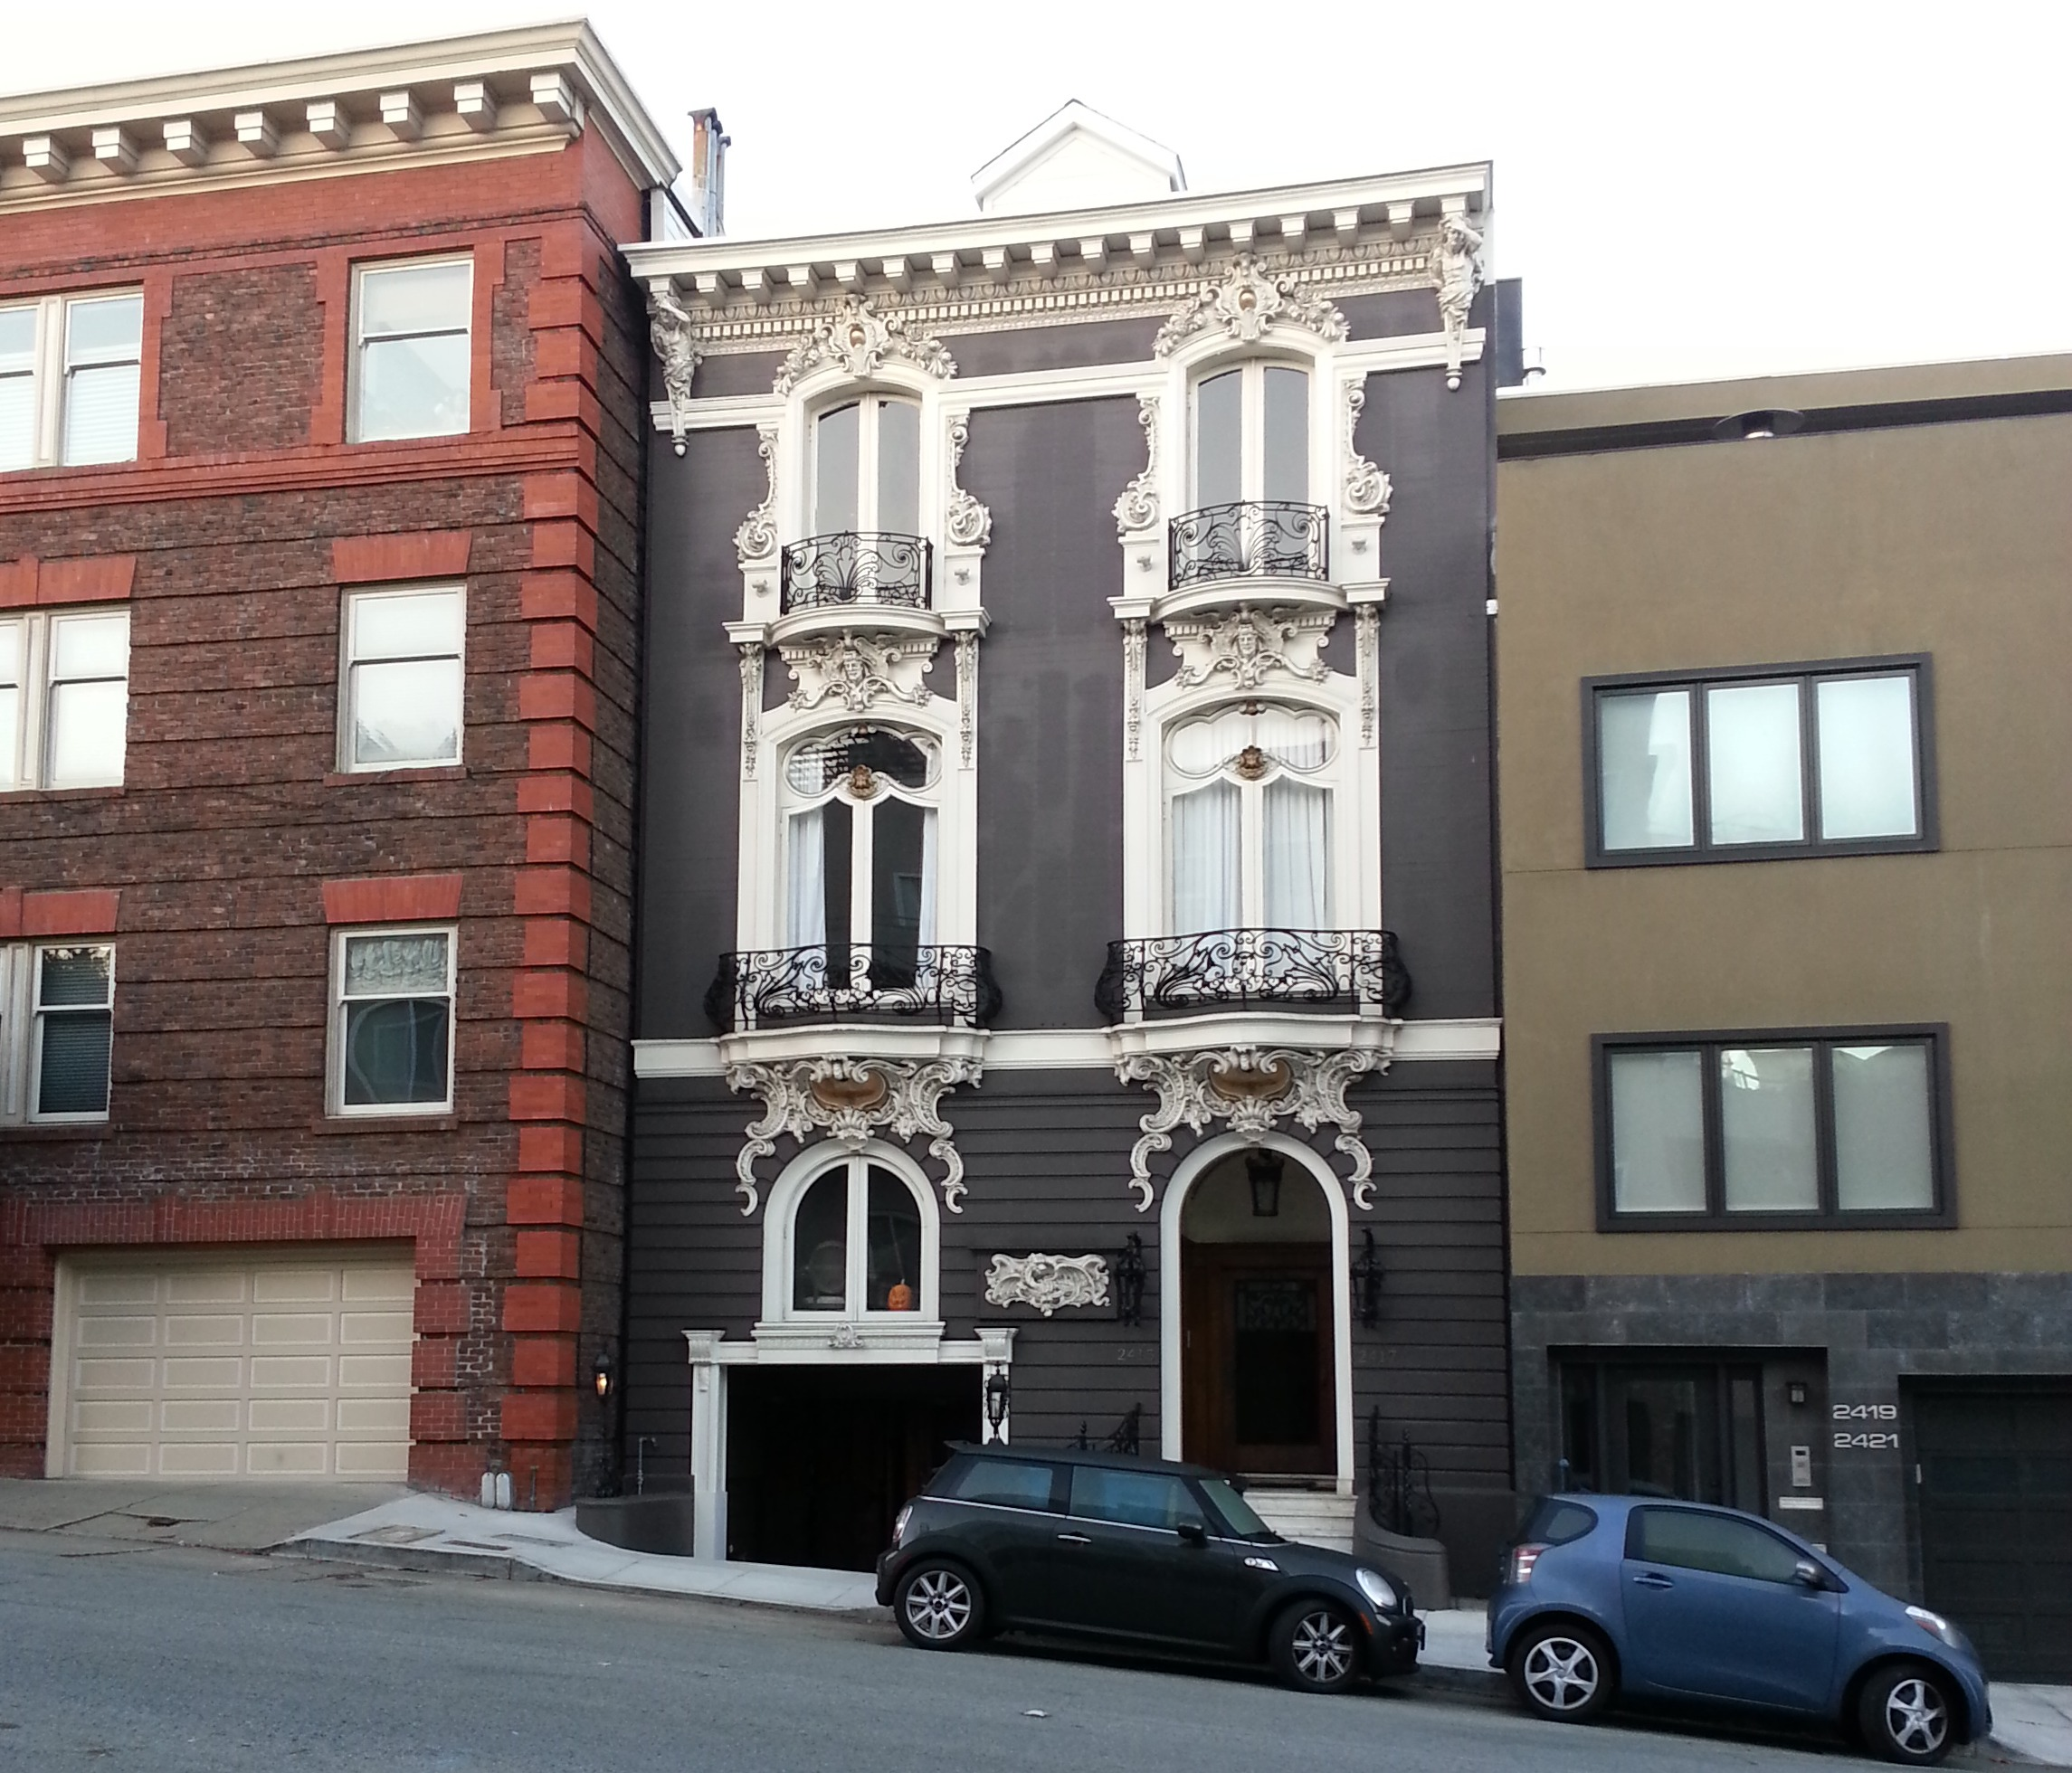 Cool house in pacific heights san francisco for Houses in san francisco